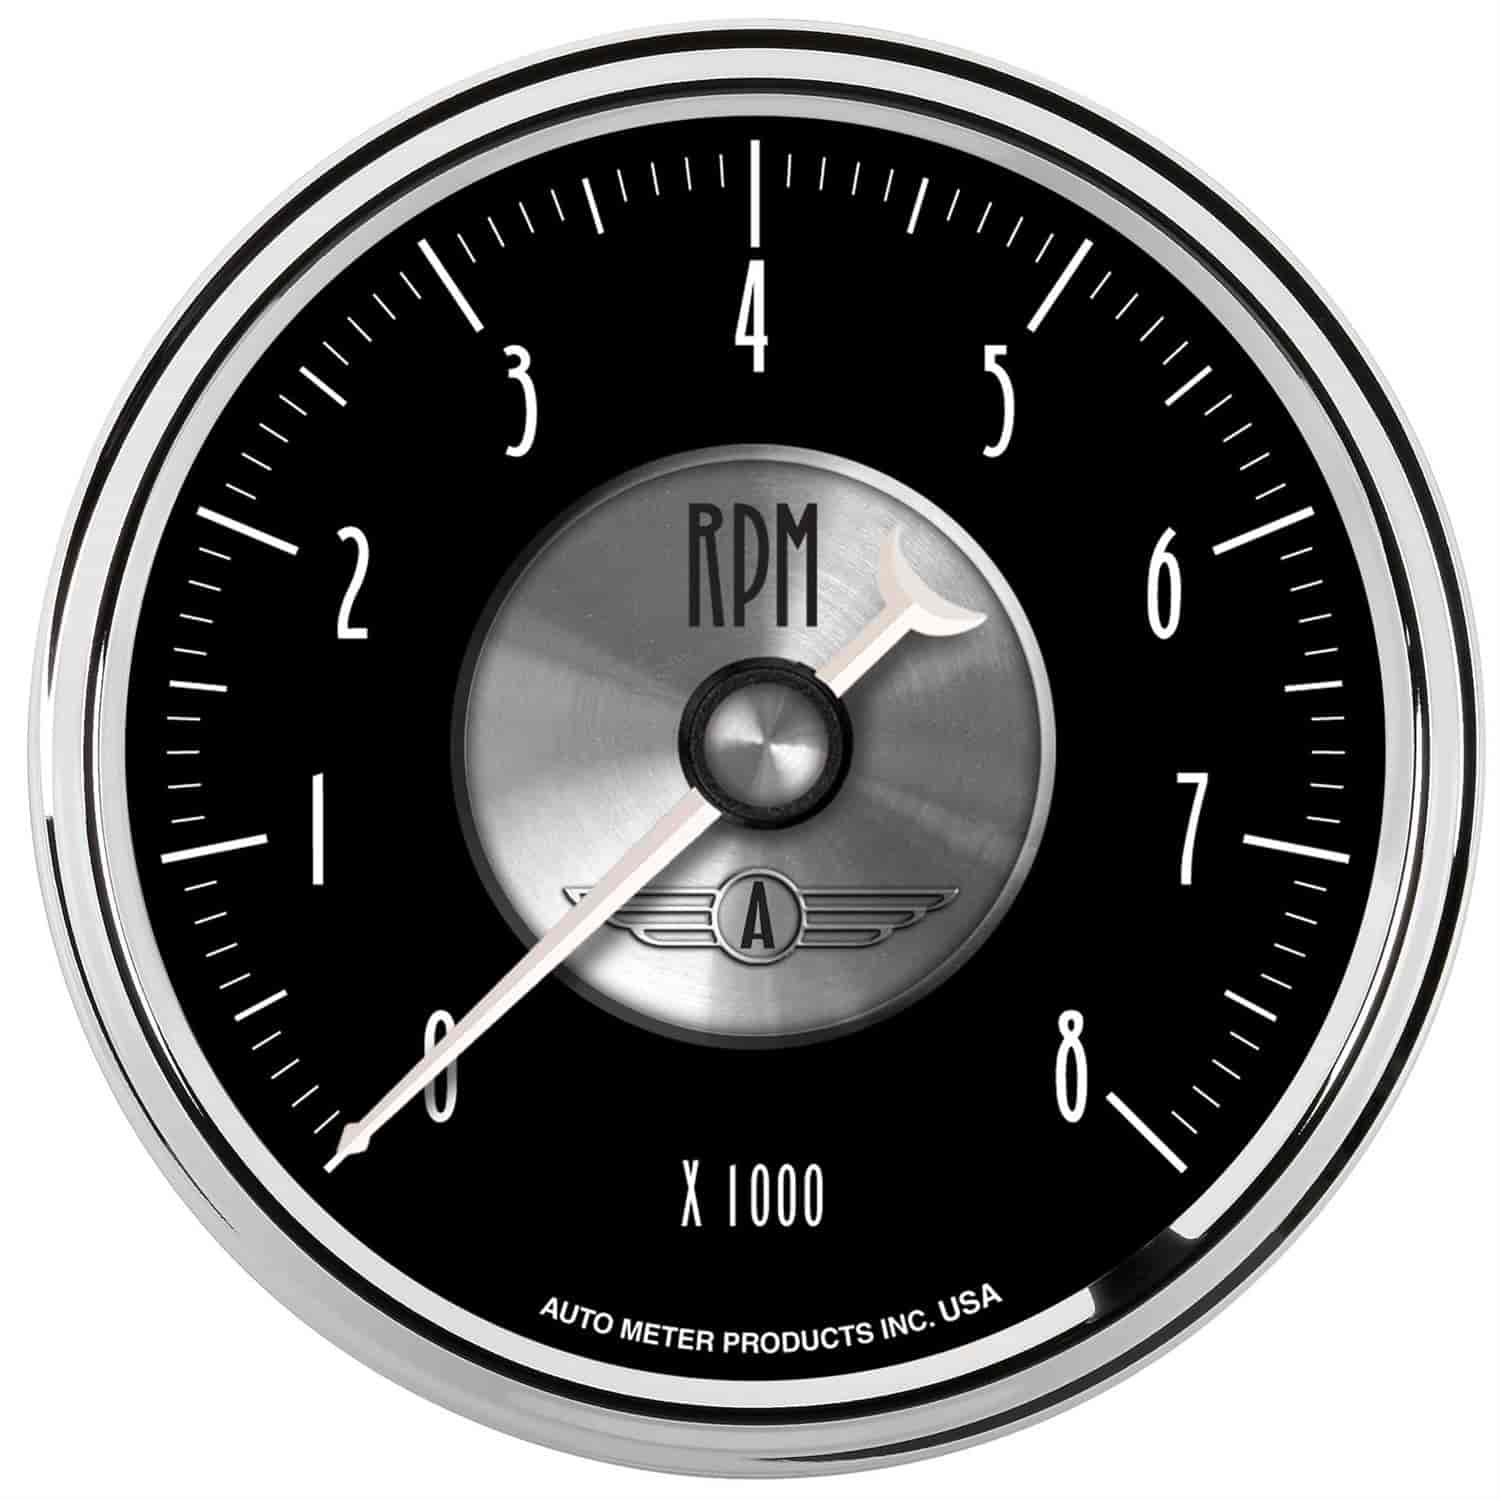 Auto Meter 2096 - Auto Meter Prestige Black Diamond Gauges